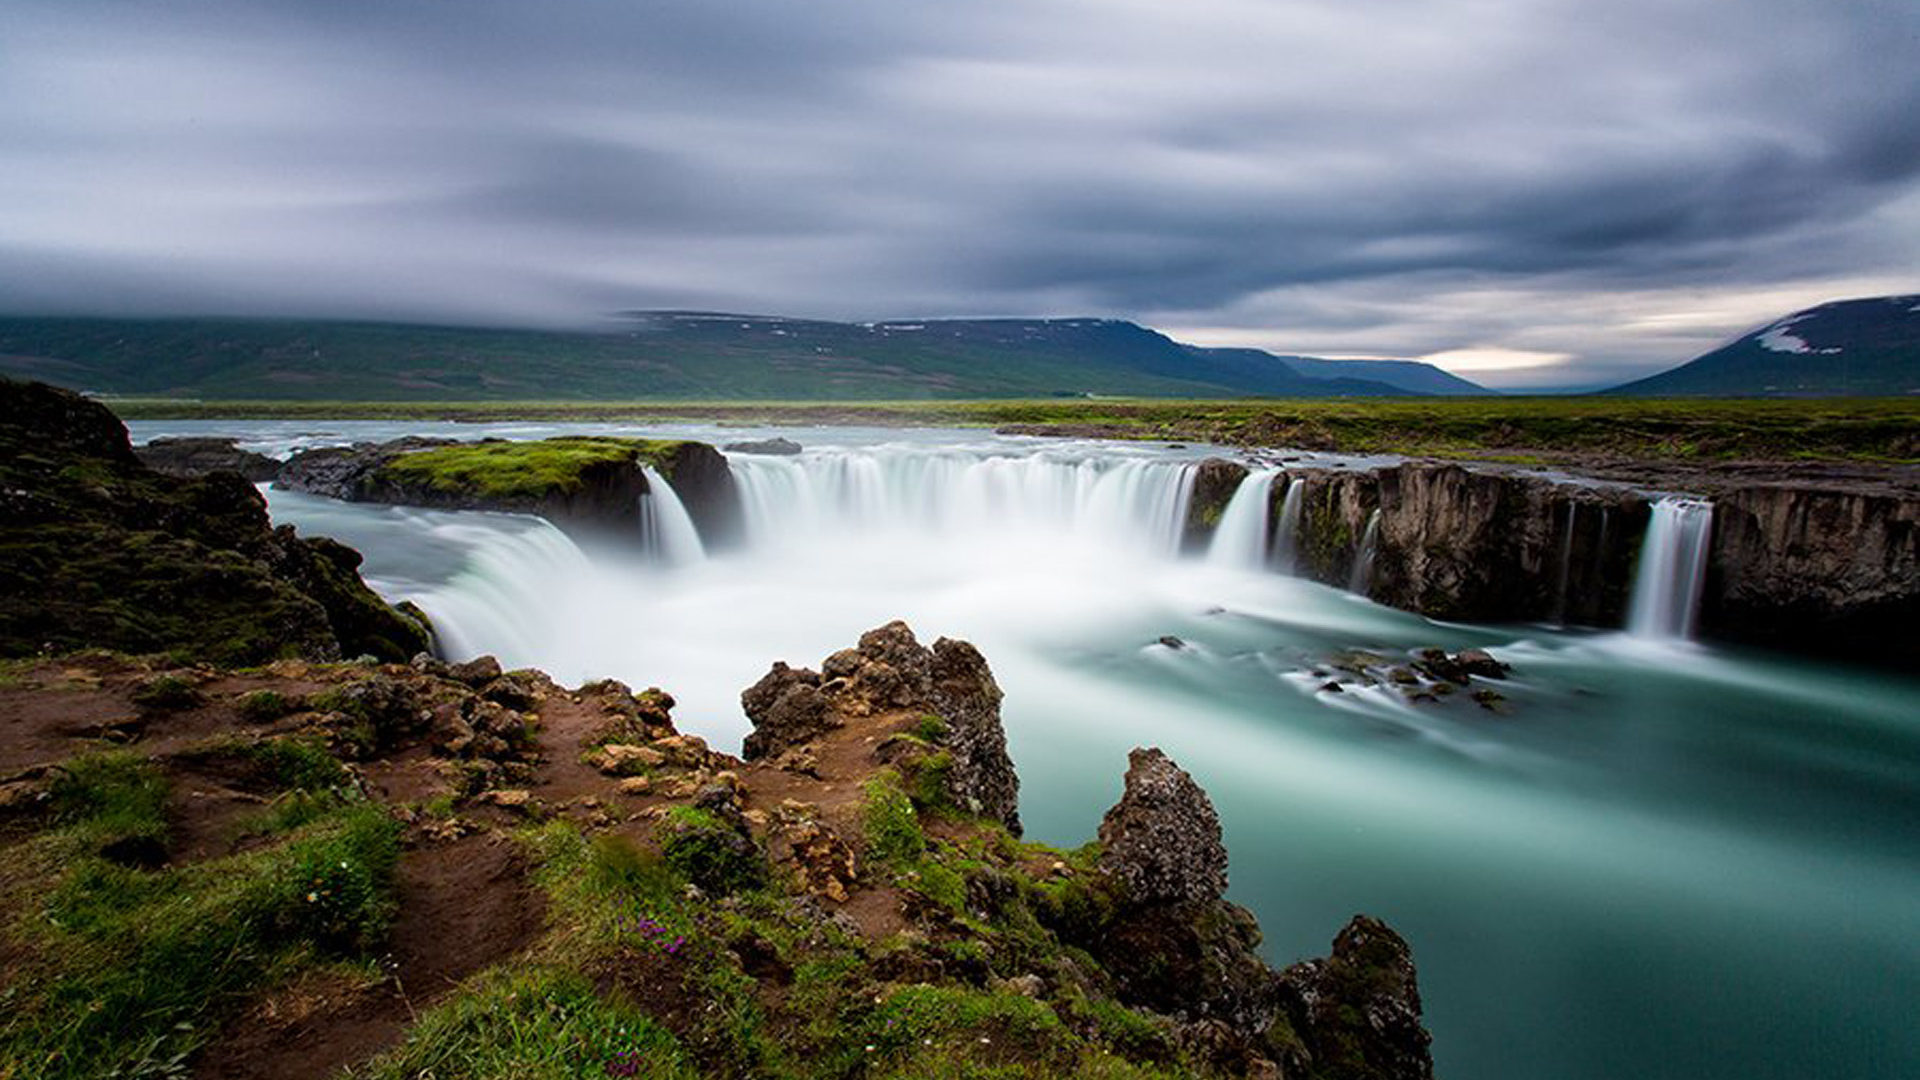 Natural Falls Wallpaper Free Download Go 240 Afoss Falls Iceland Full Hd Wallpapers 1920x1200